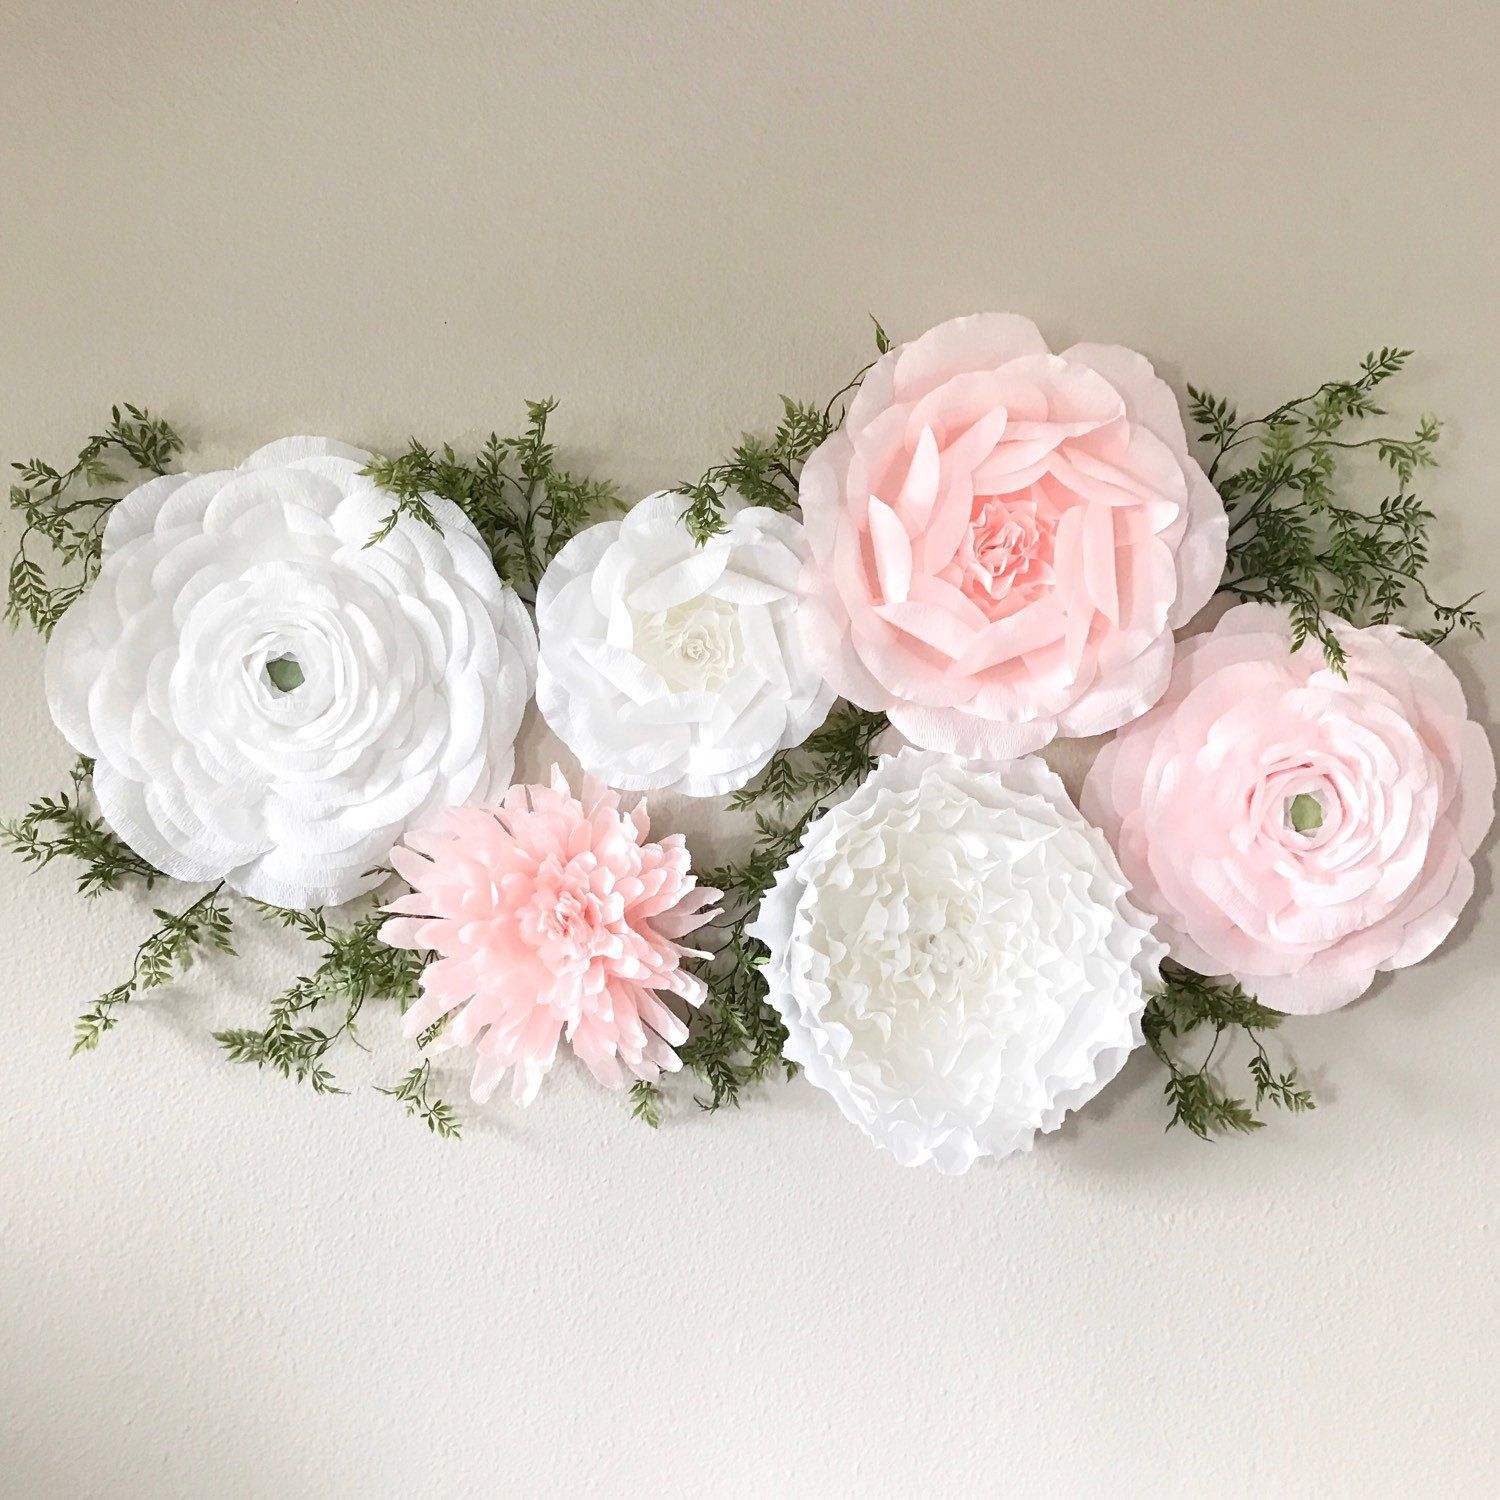 Crepe Paper Wall Flower Set Of Mixed Styles Paper Ranunculus Paper Roses Nursery